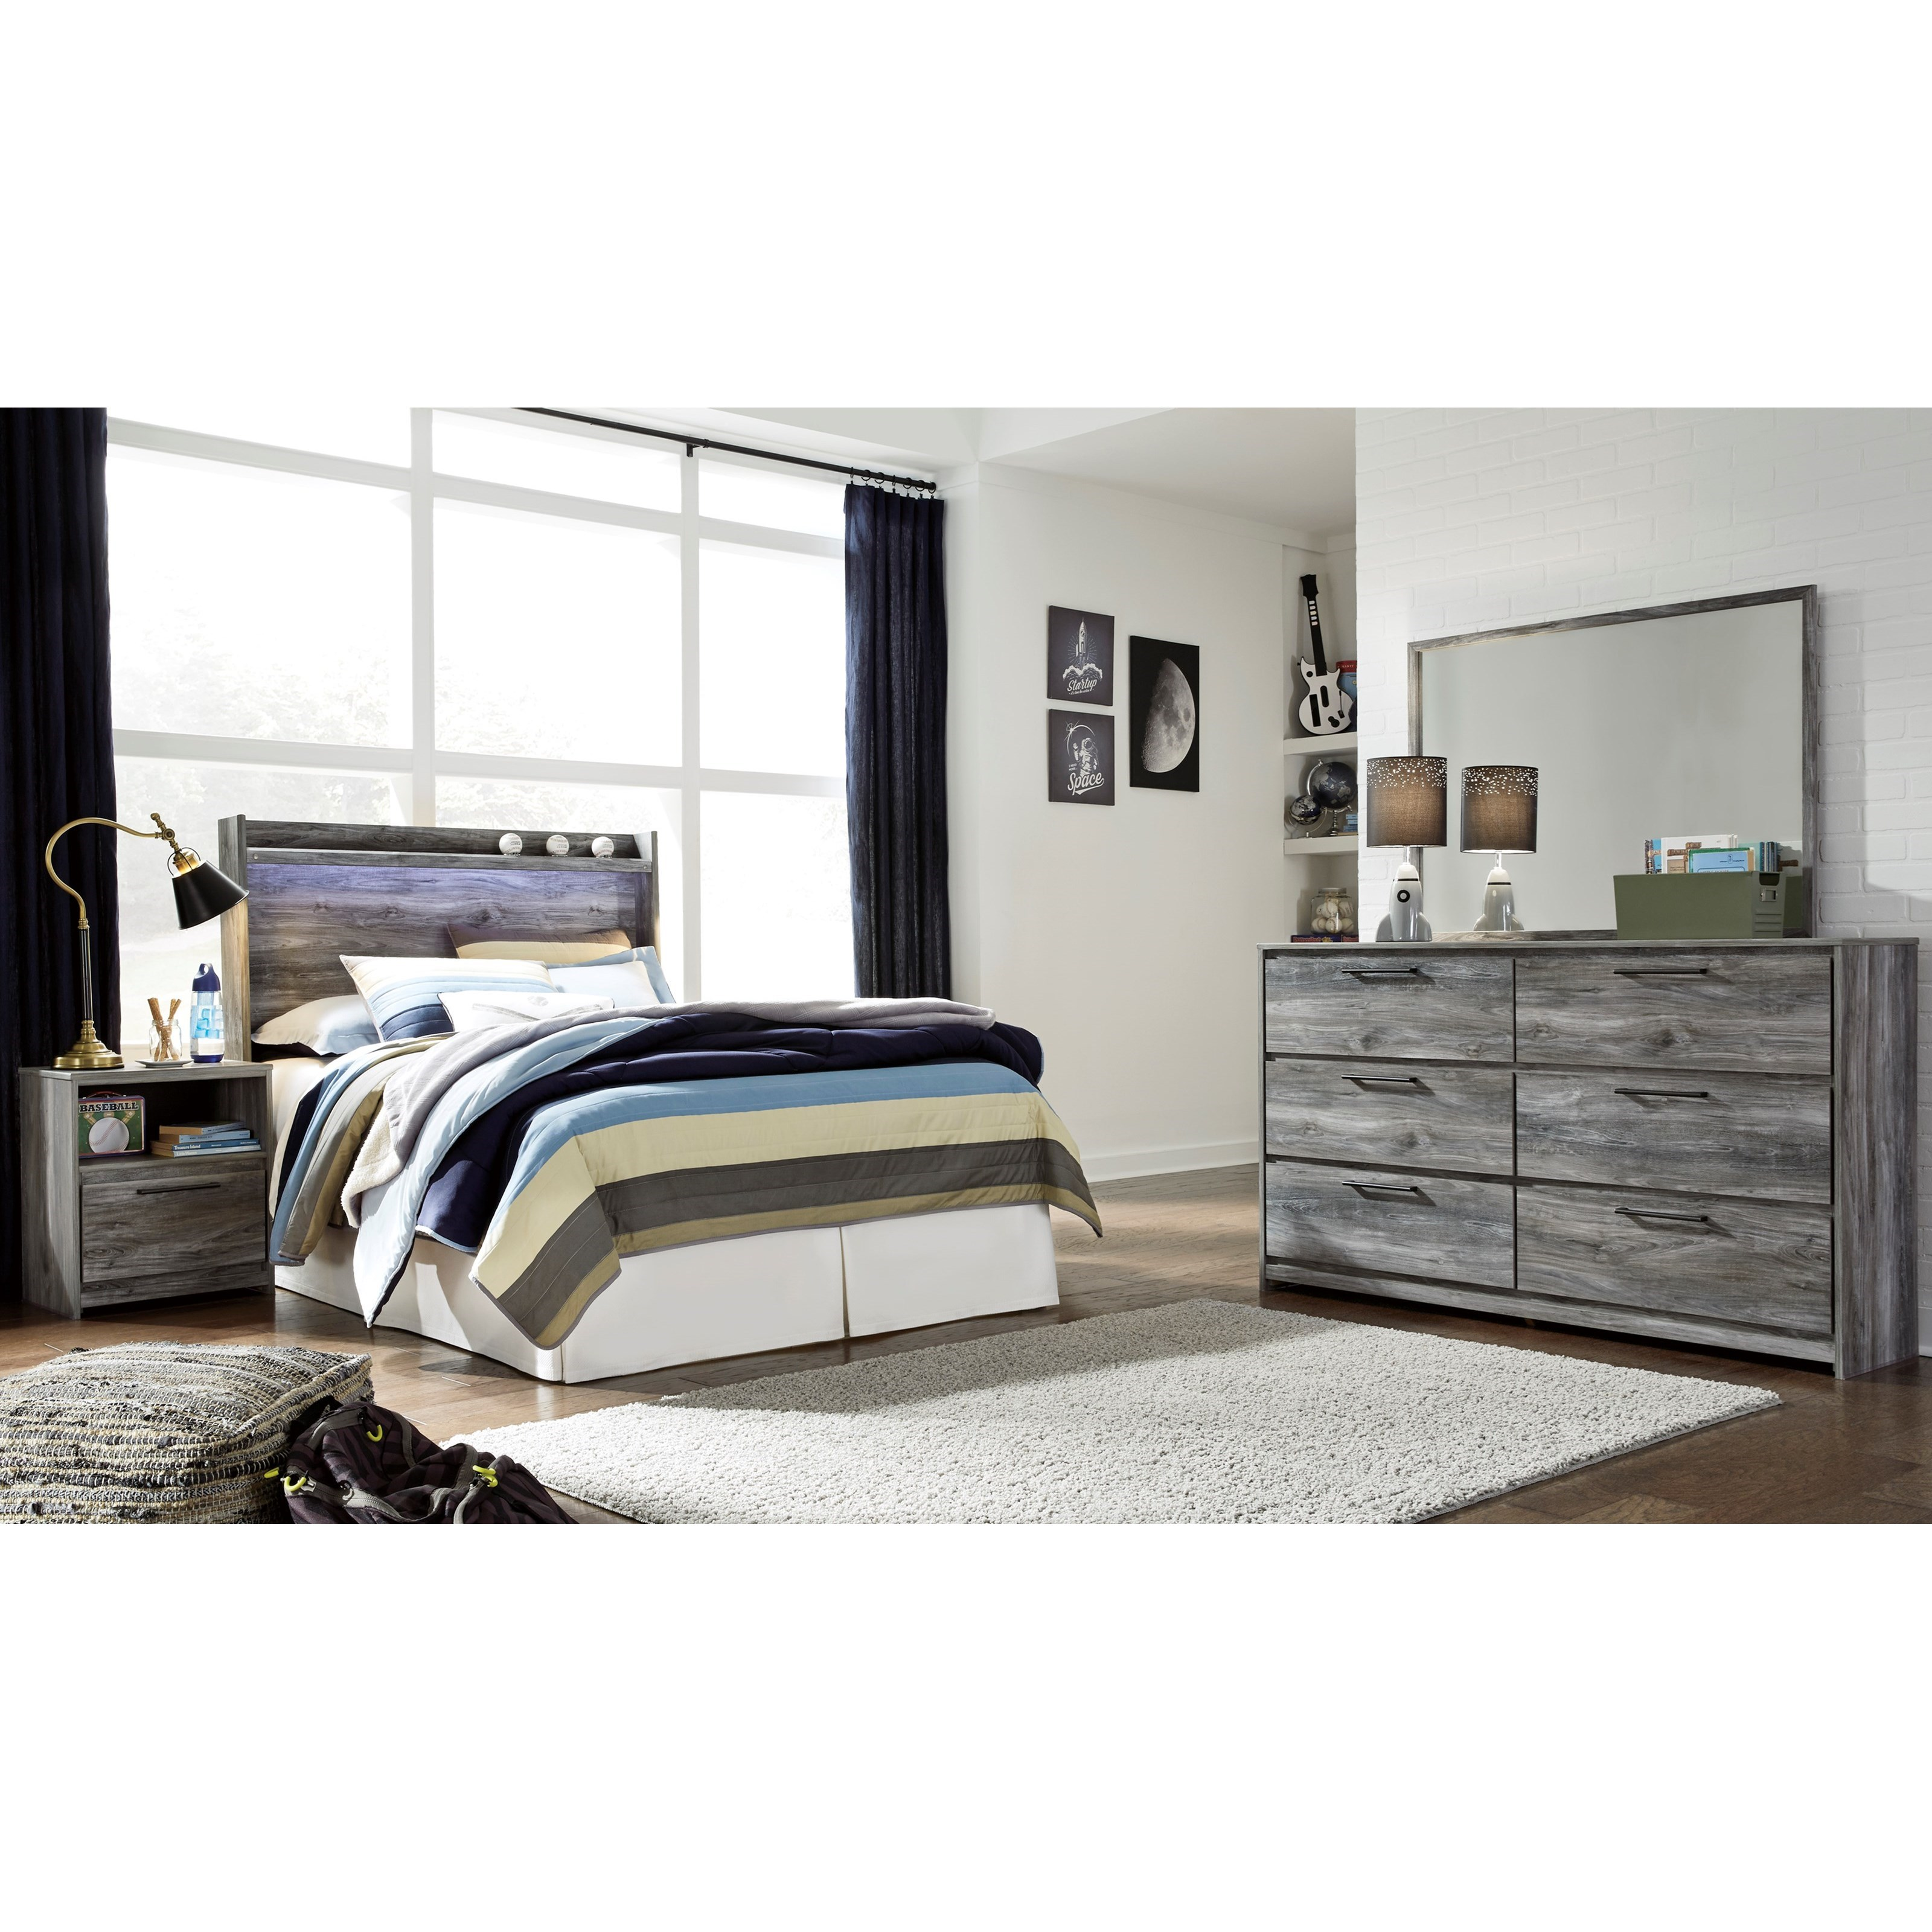 Baystorm Full Bedroom Group by Signature Design by Ashley at Rife's Home Furniture